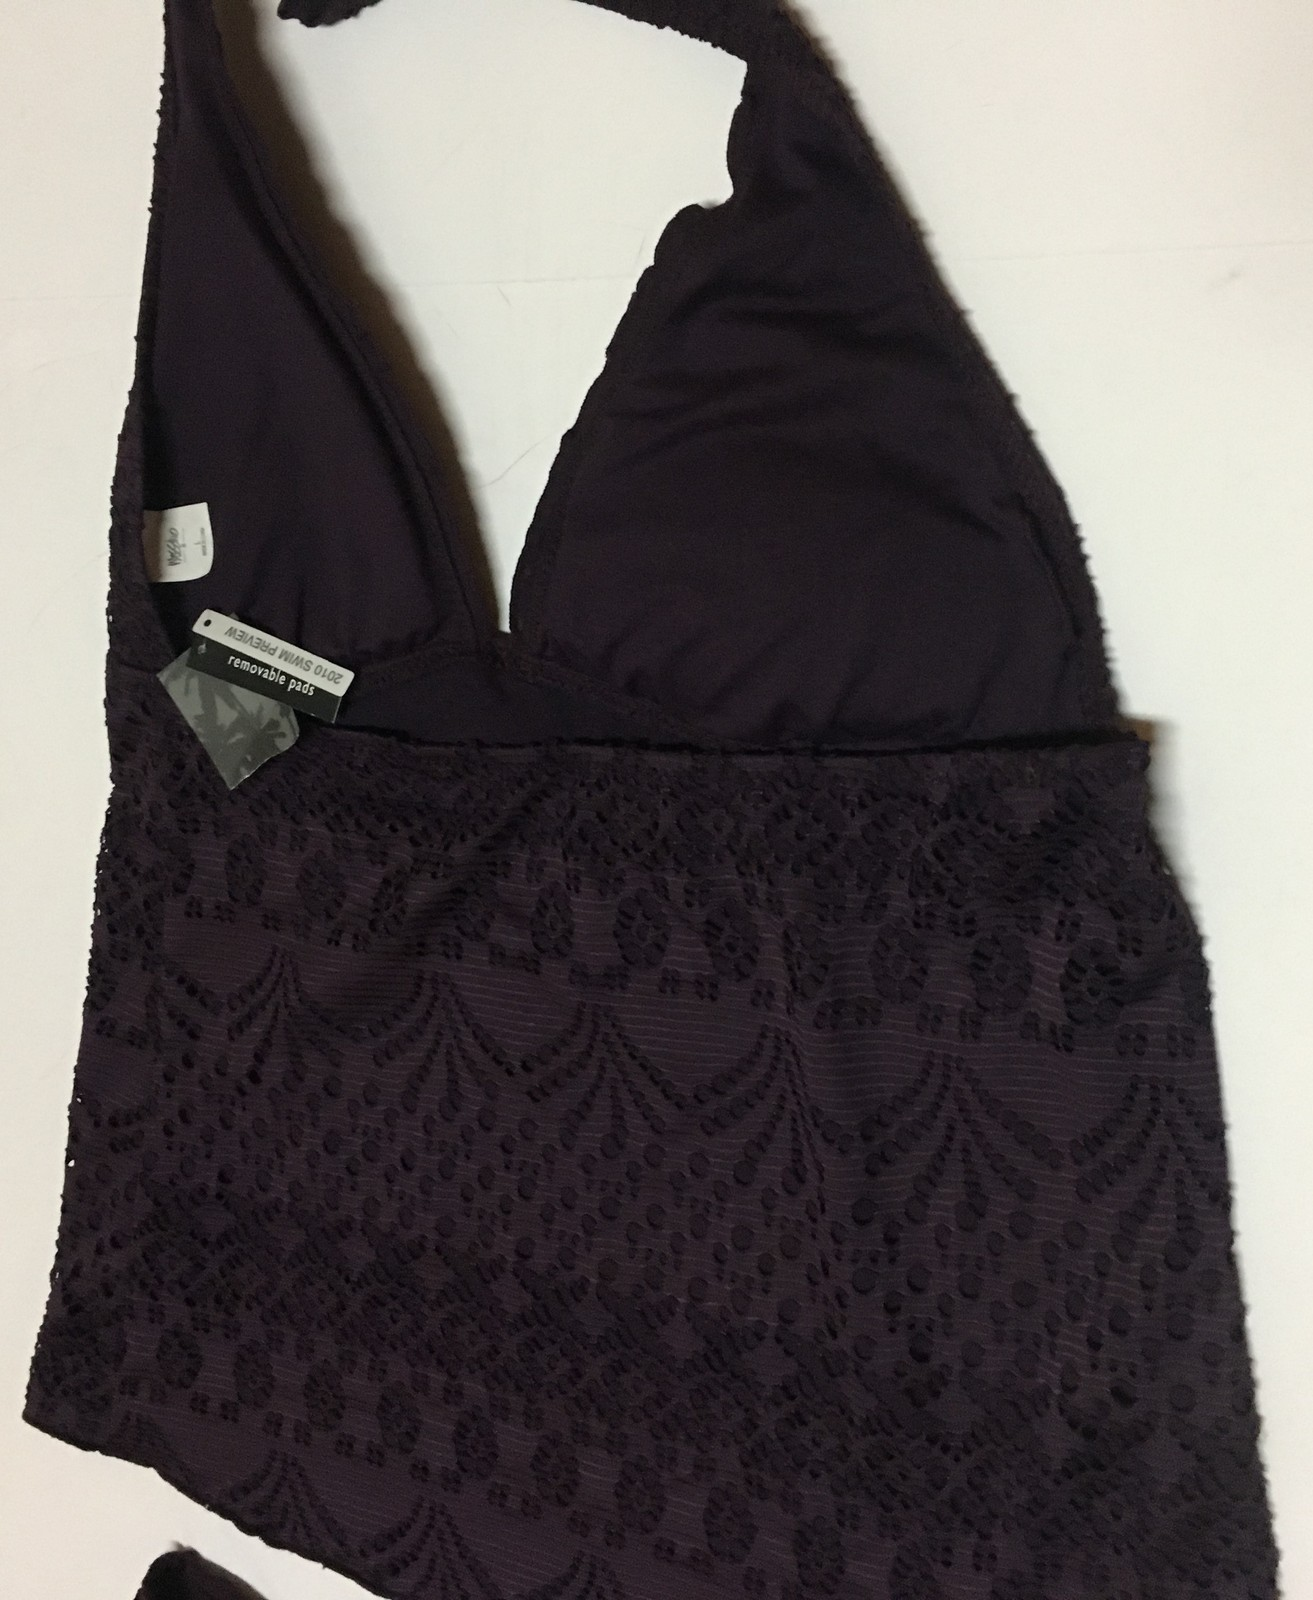 Mossimo Dark Purple Lace Two Piece Swimsuit L/XL NWT